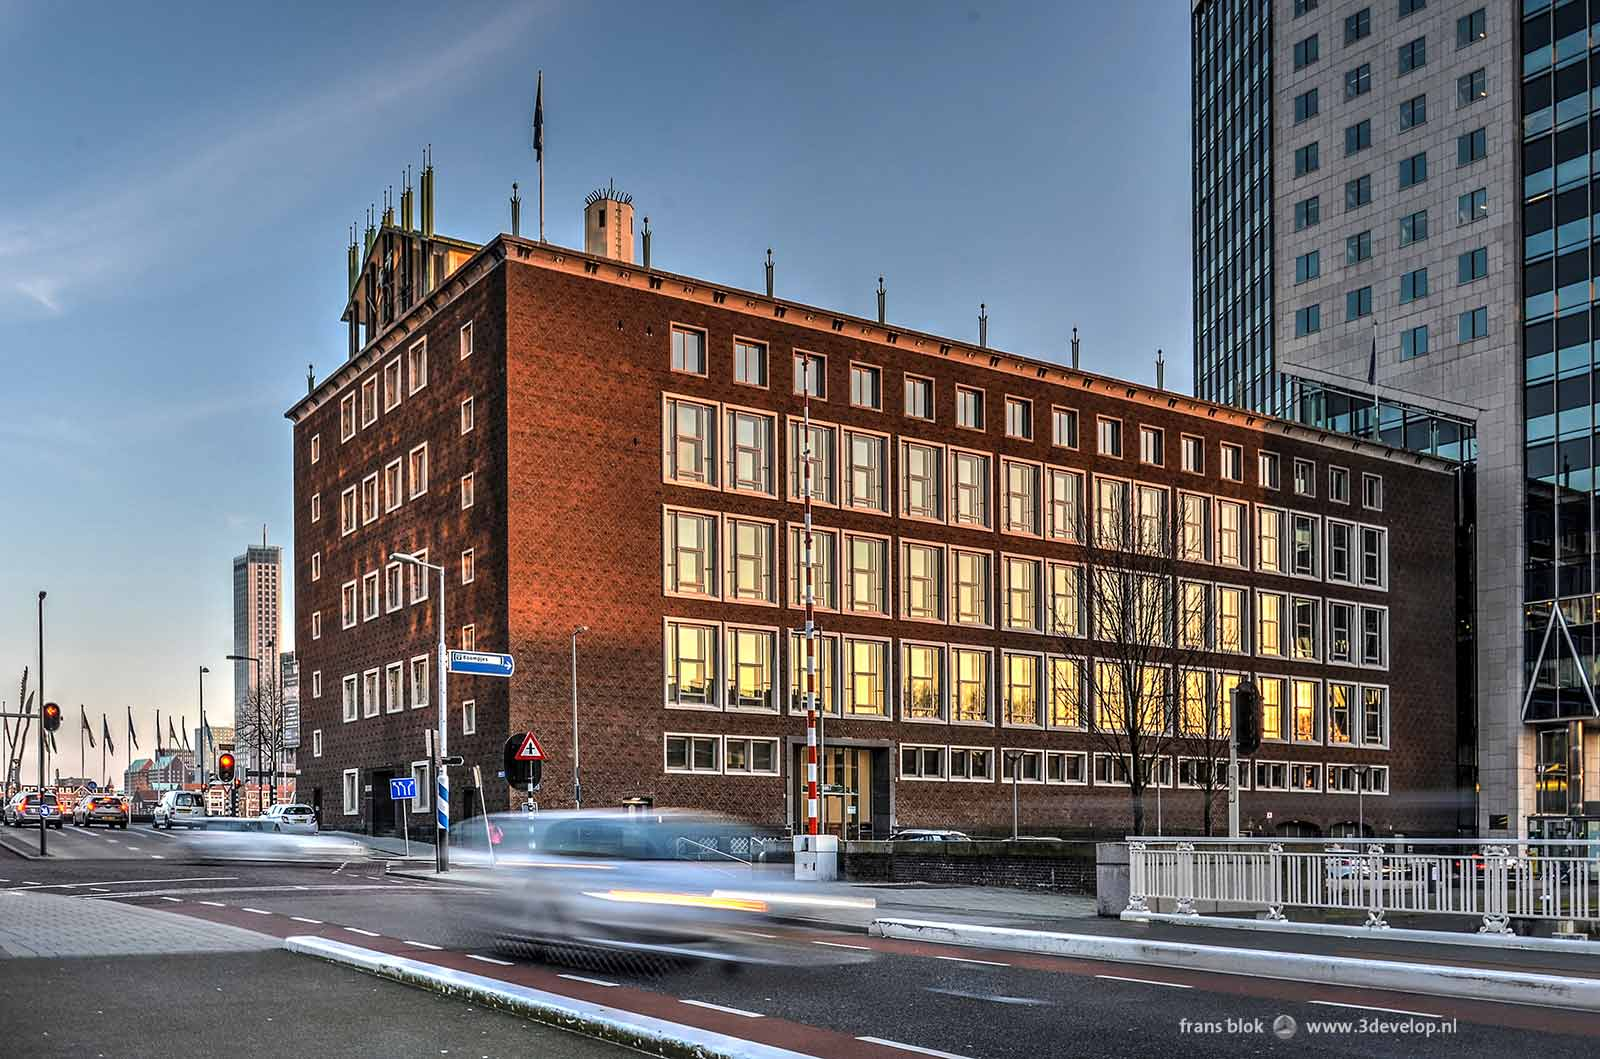 Former suboffice of the dutch National Bank at Boompjes in Rotterdam, photographed in late afternoon from Scheepmakershaven